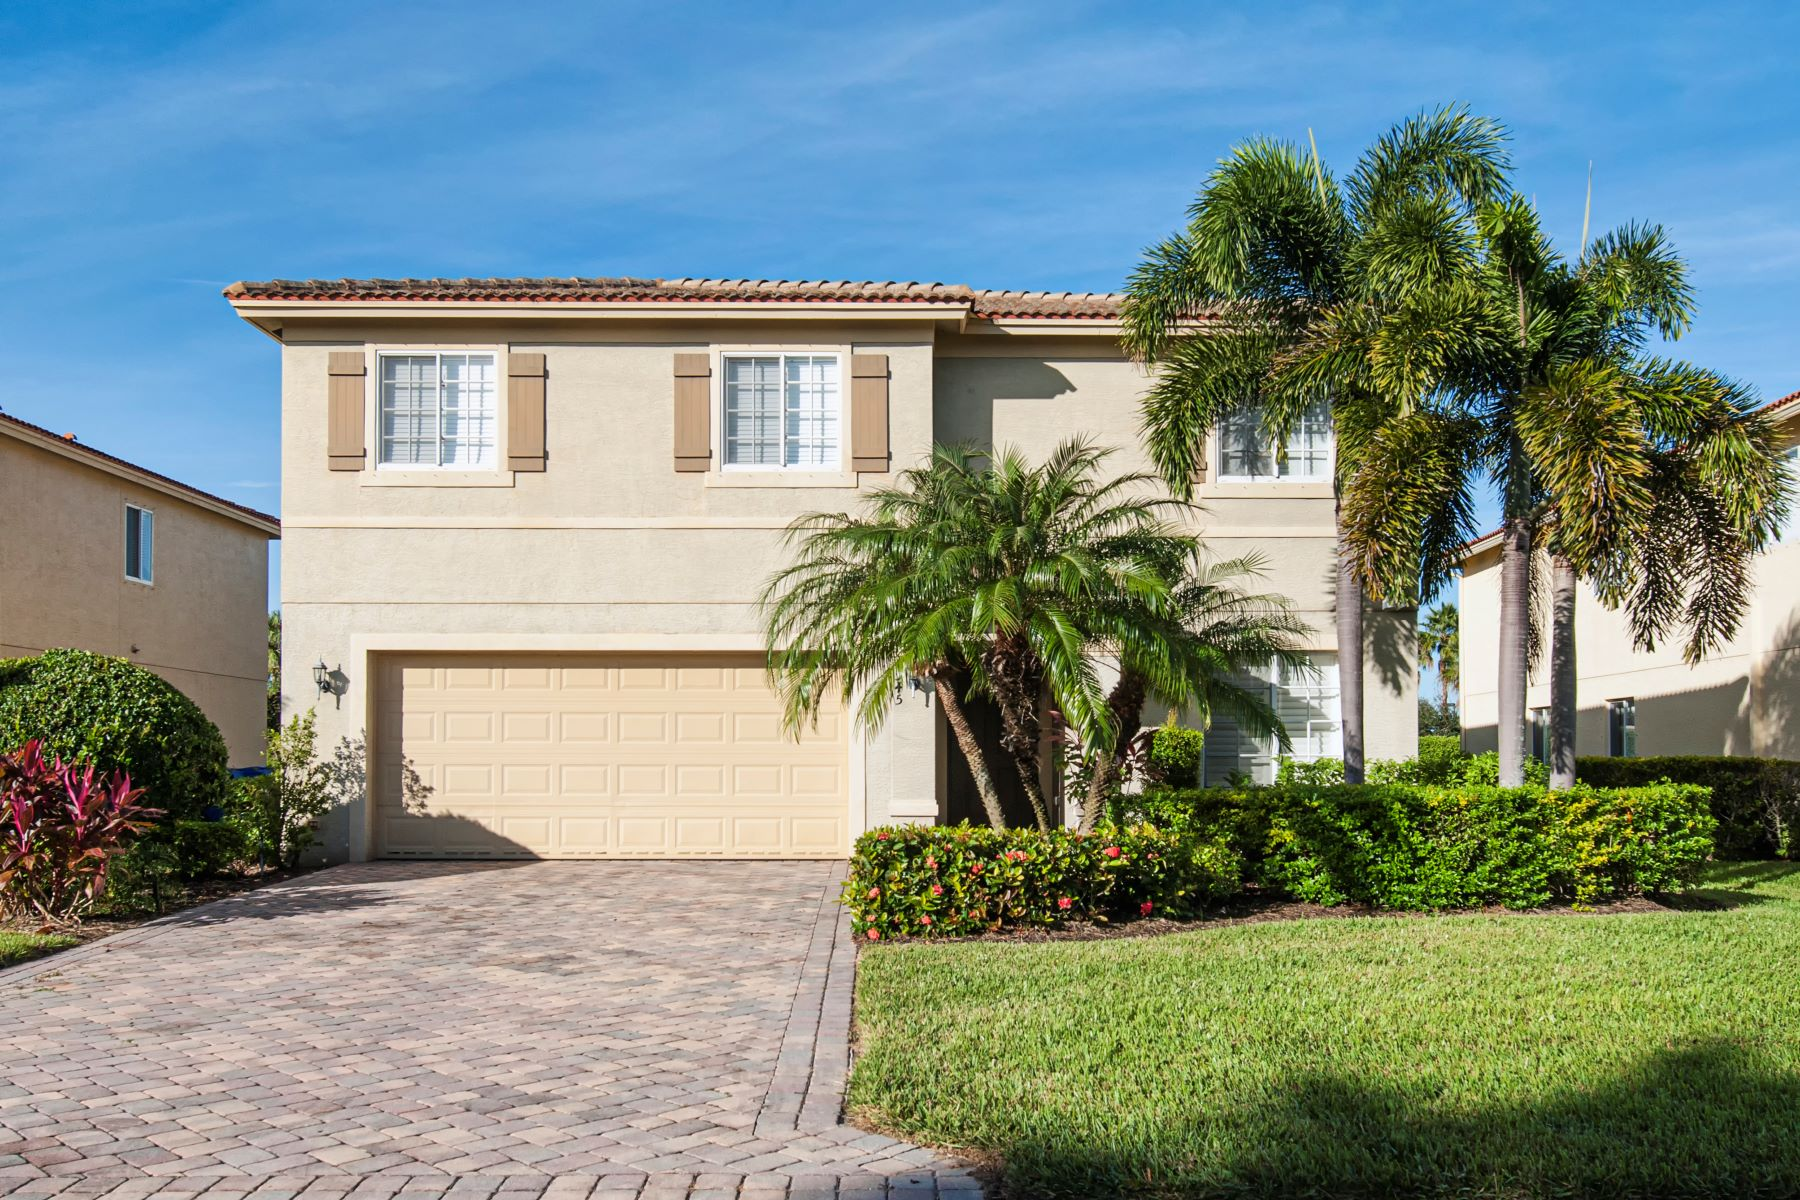 Single Family Homes for Sale at Spacious Five Bedroom Home 5545 45th Avenue Vero Beach, Florida 32967 United States